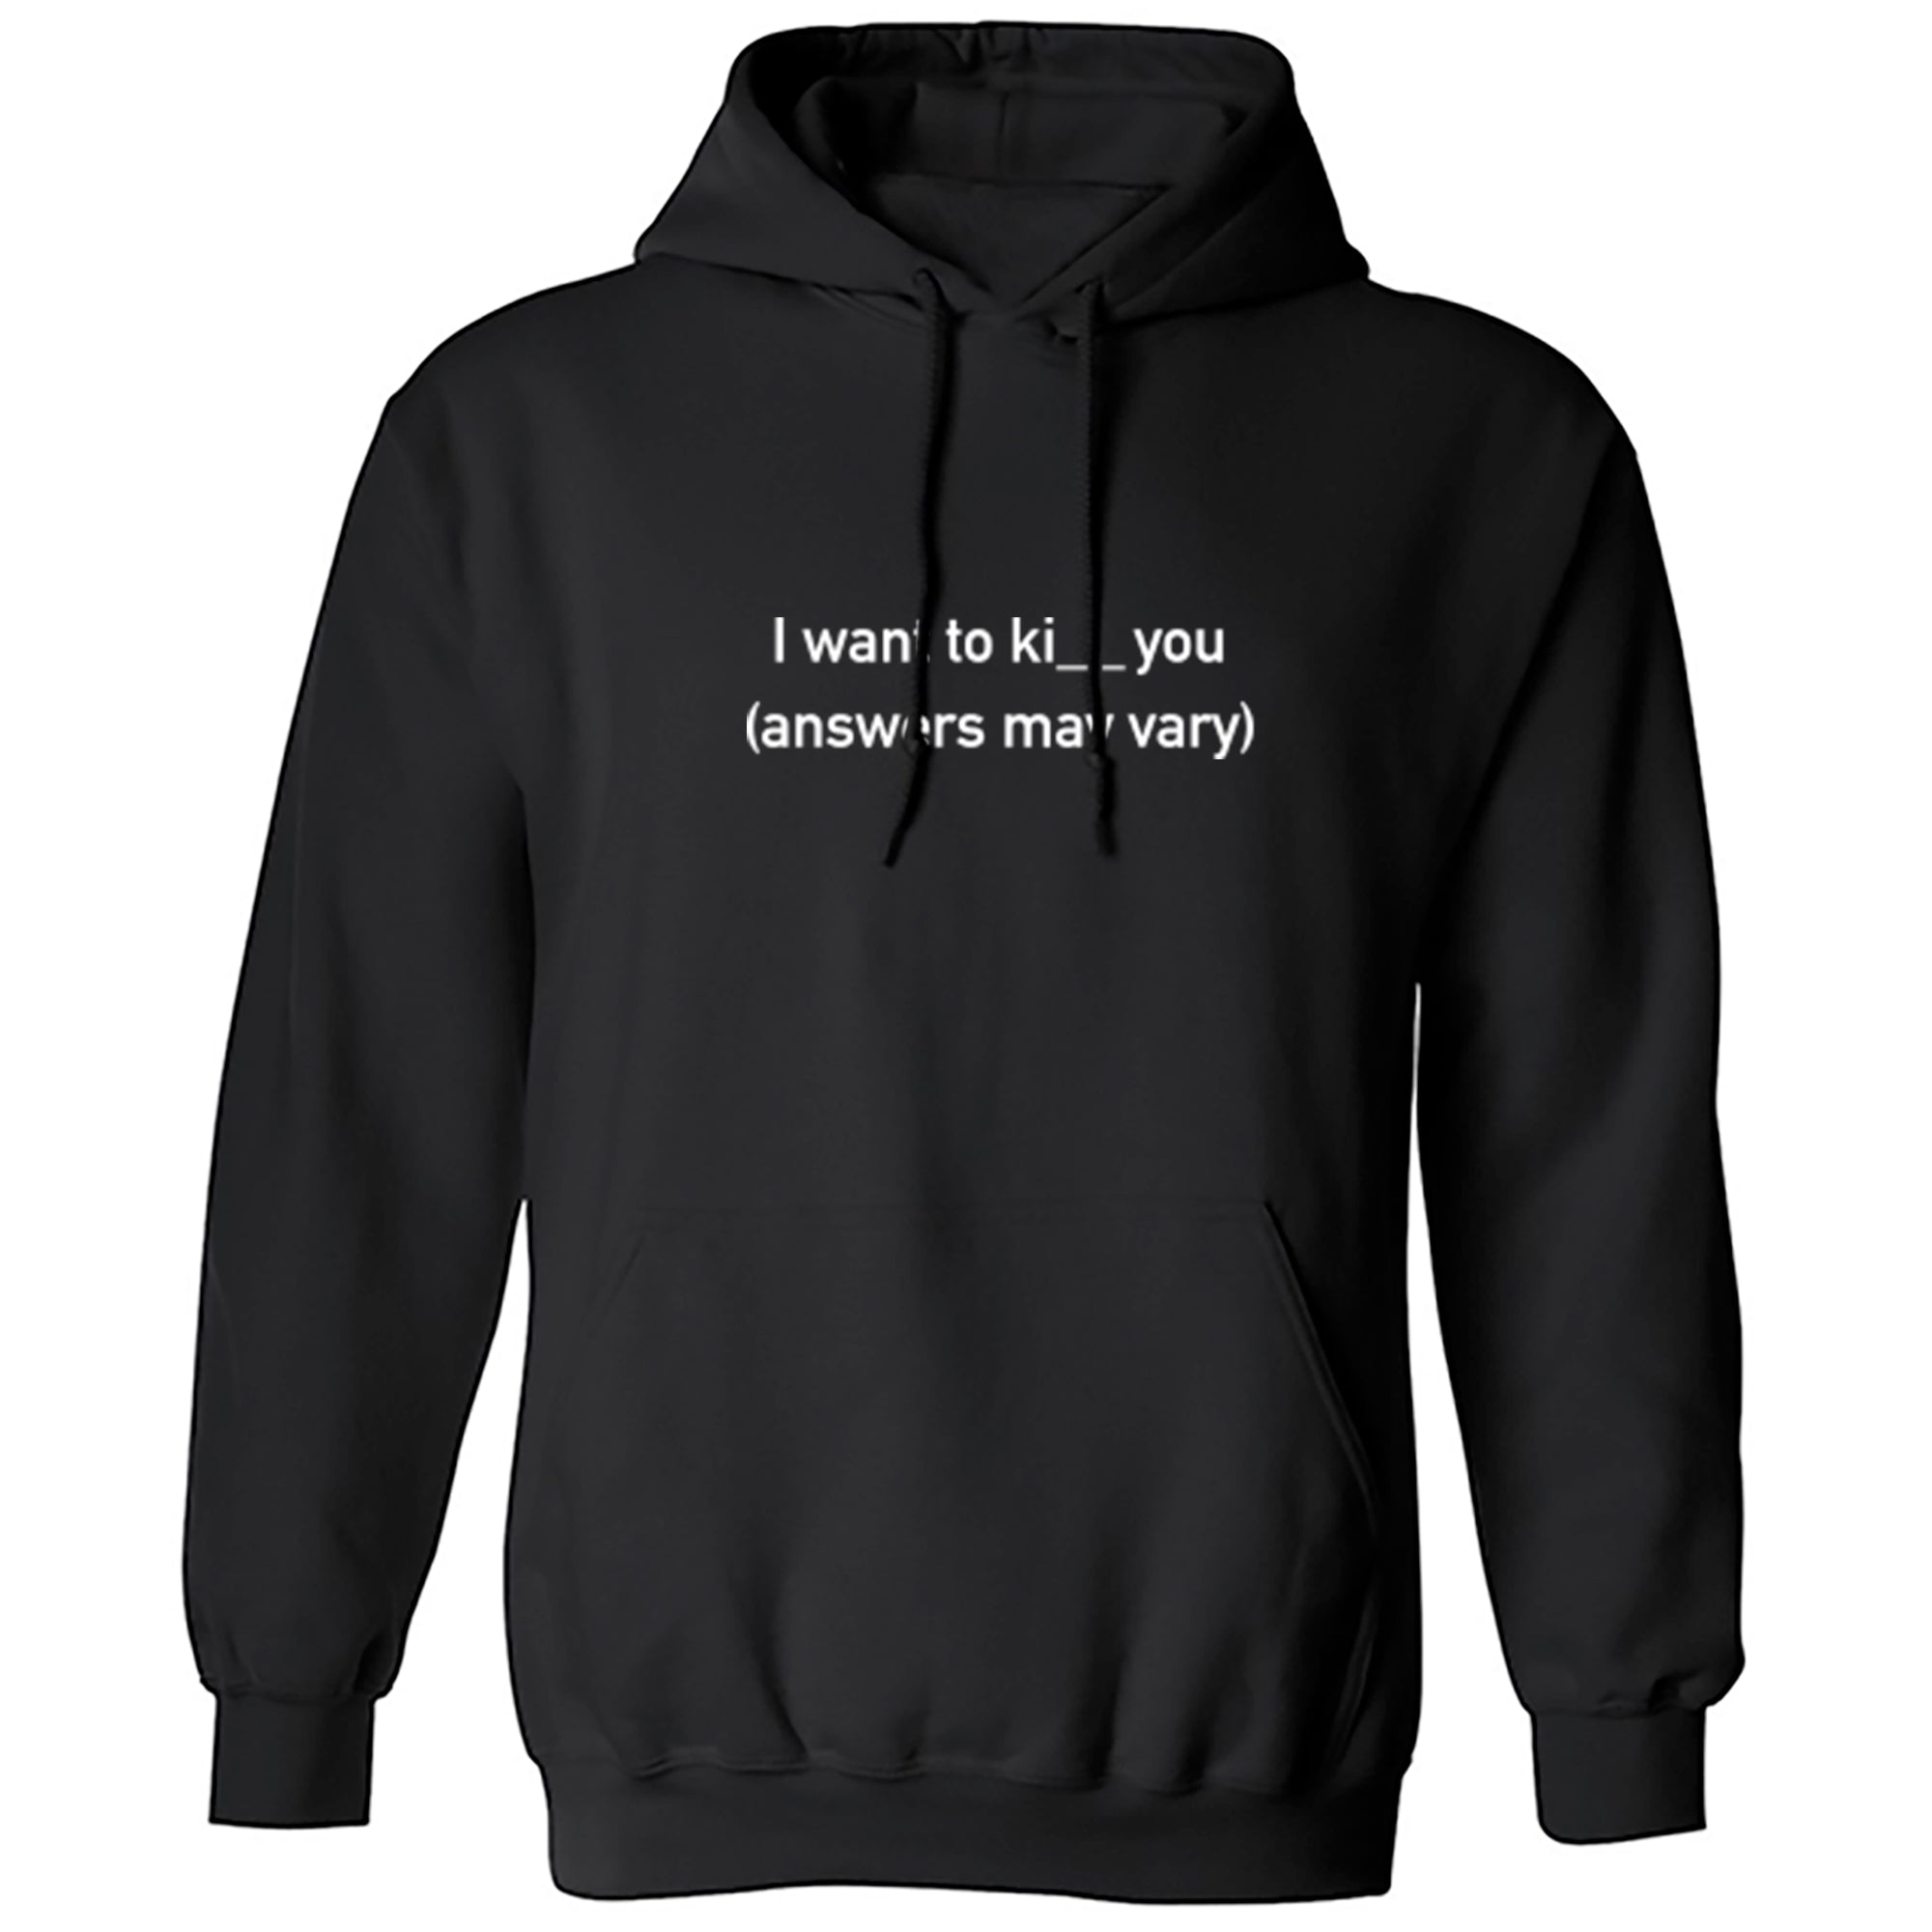 I Want To Ki__ You (Answers May Vary) Unisex Hoodie S1054 - Illustrated Identity Ltd.